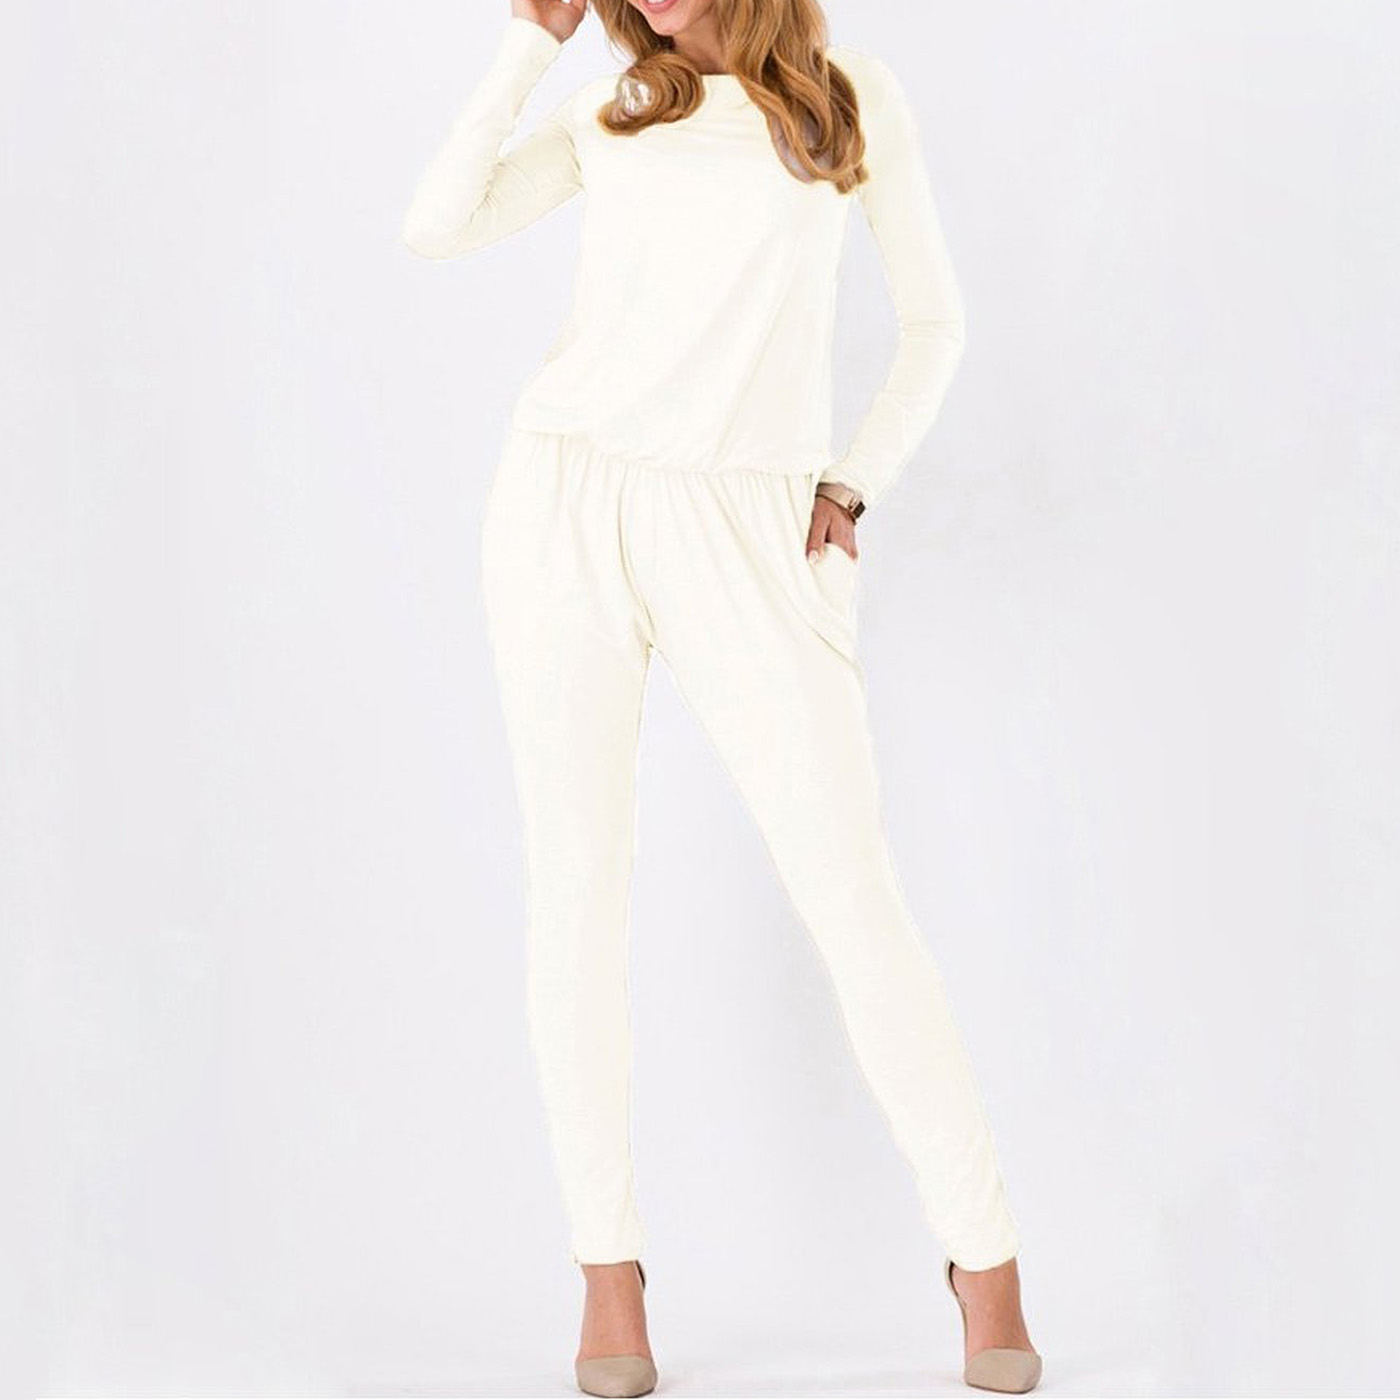 BFYL Women Jumpsuits Rompers Long Sleeve Side Pockets Elastic Waist Rompers White L